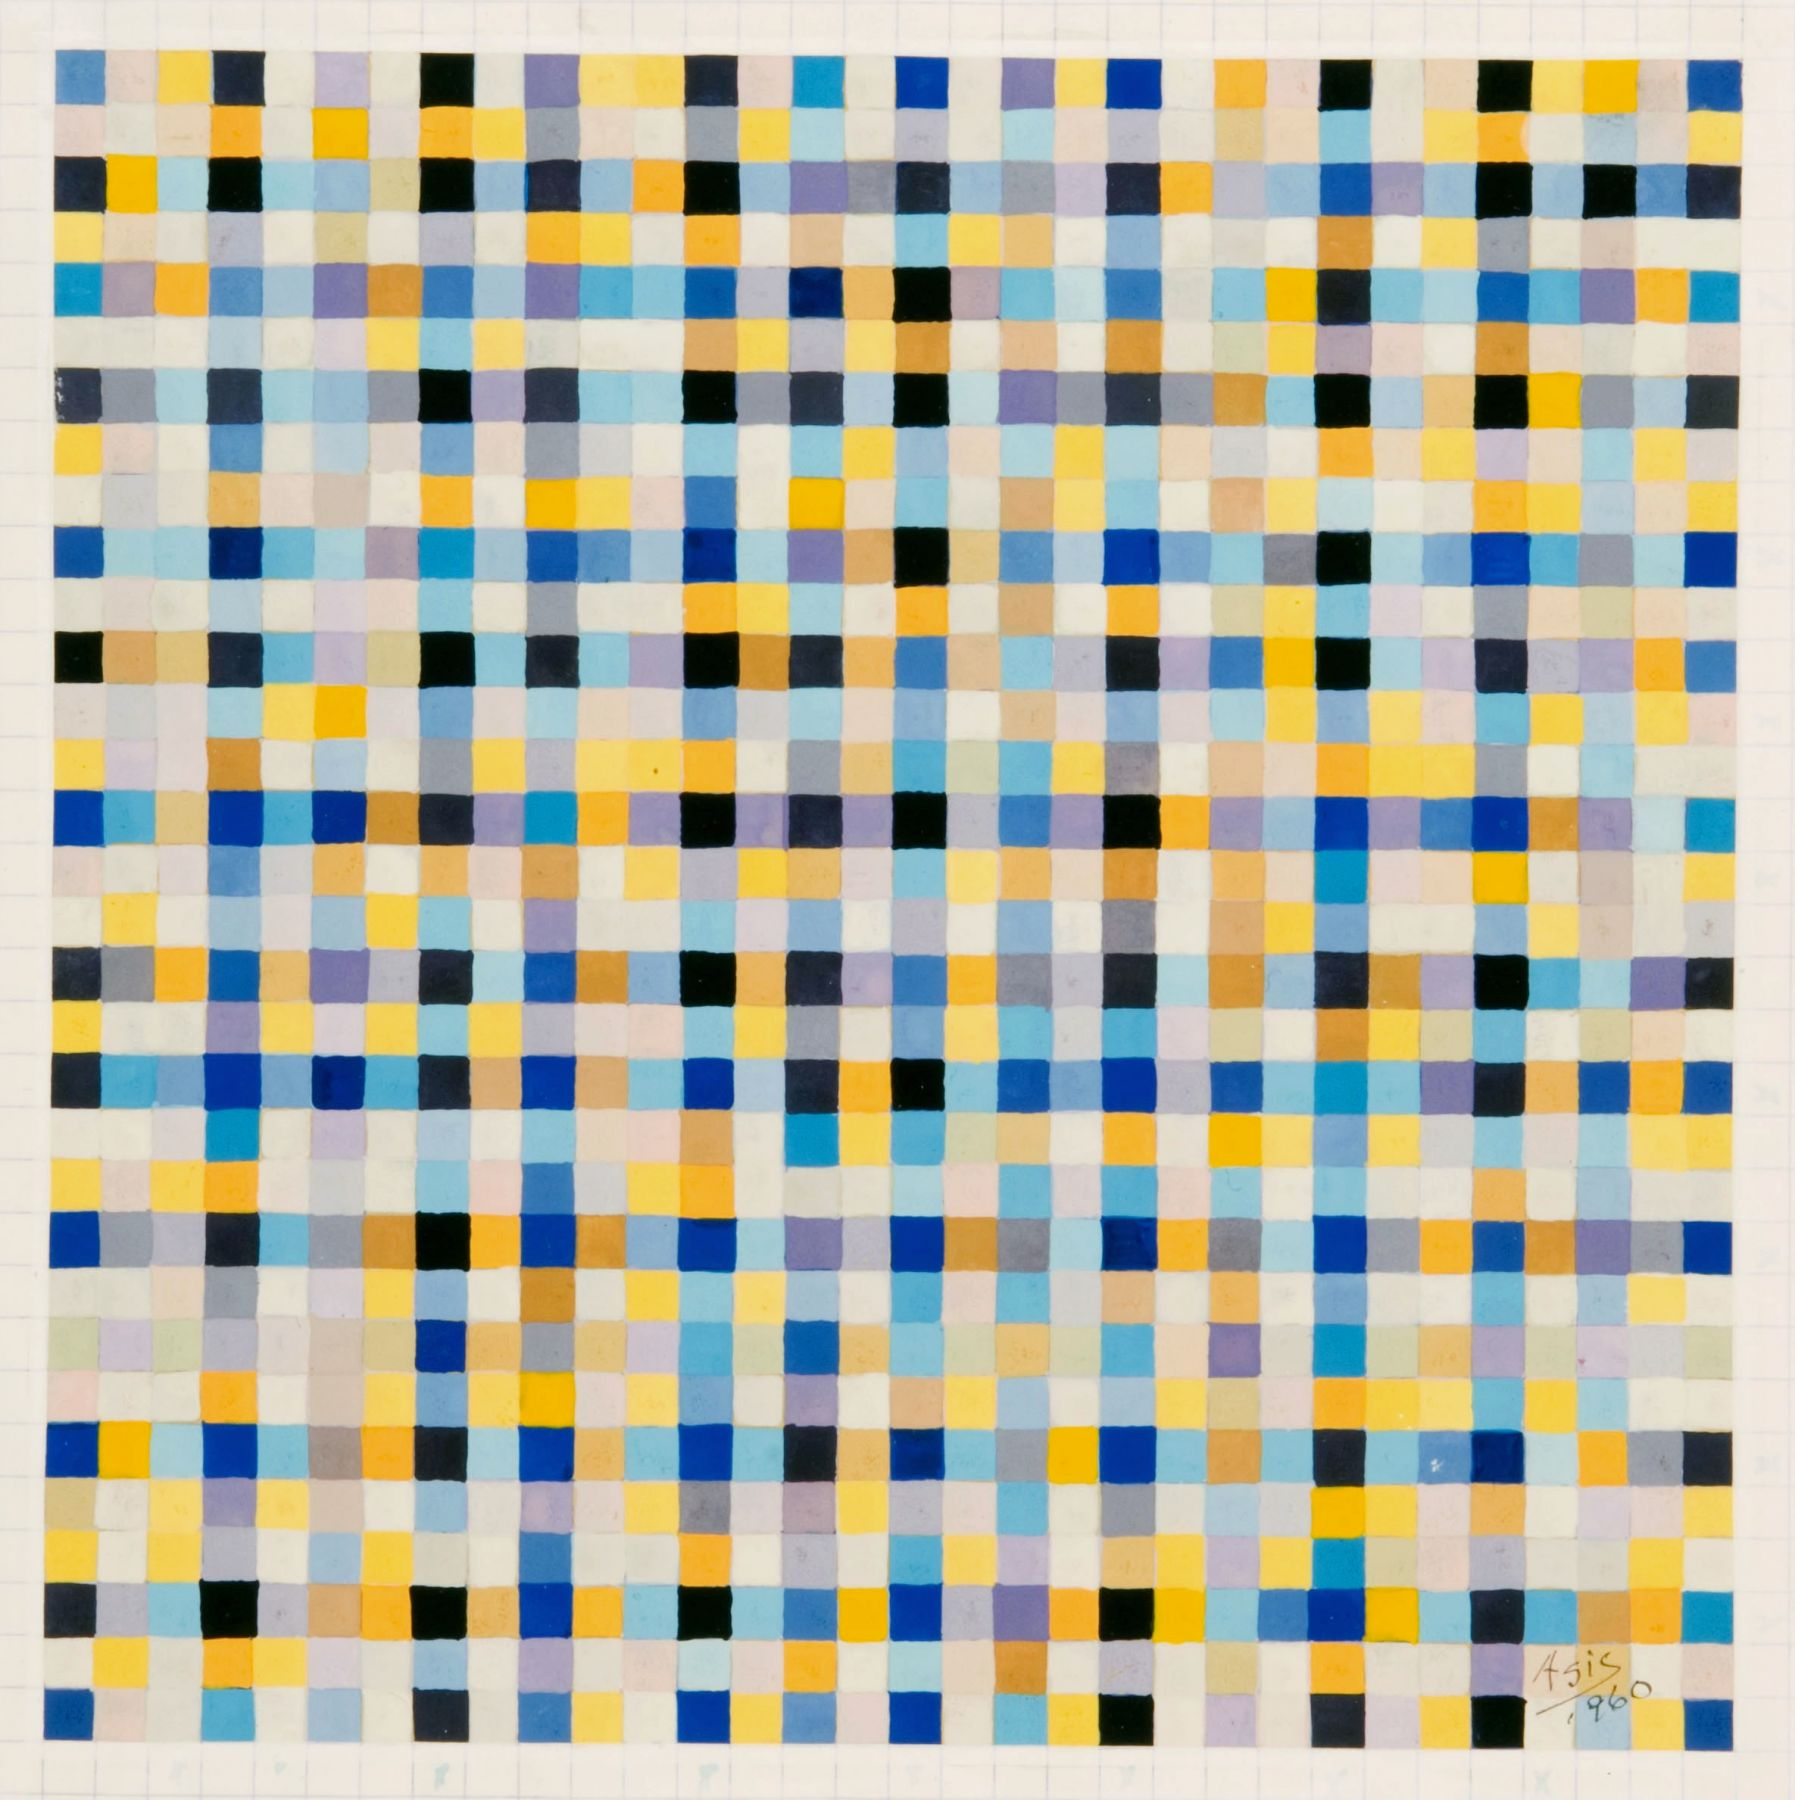 Antonio Asis,Untitled from the series Chromatisme Quadrillé Polychrome, 1960, Gouache on paper,6 1/4 x 6 3/16 in. (15.9 x 15.8 cm.)